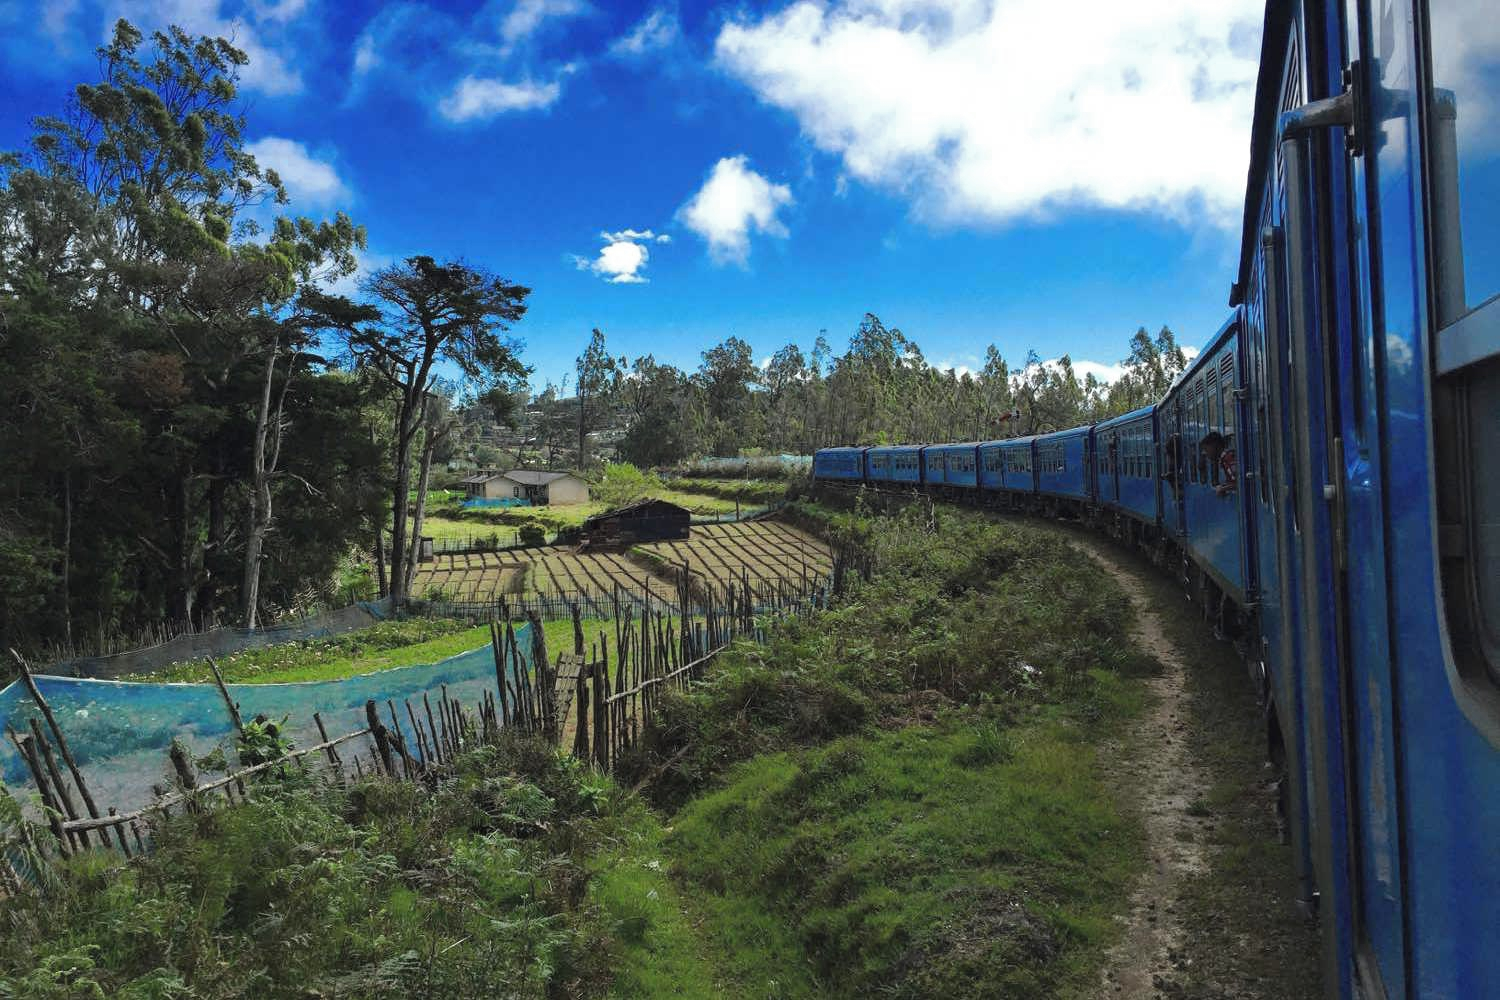 Sri-Lanka-Ella-Kandy-Train-Rice-Paddy-Tea-Feilds